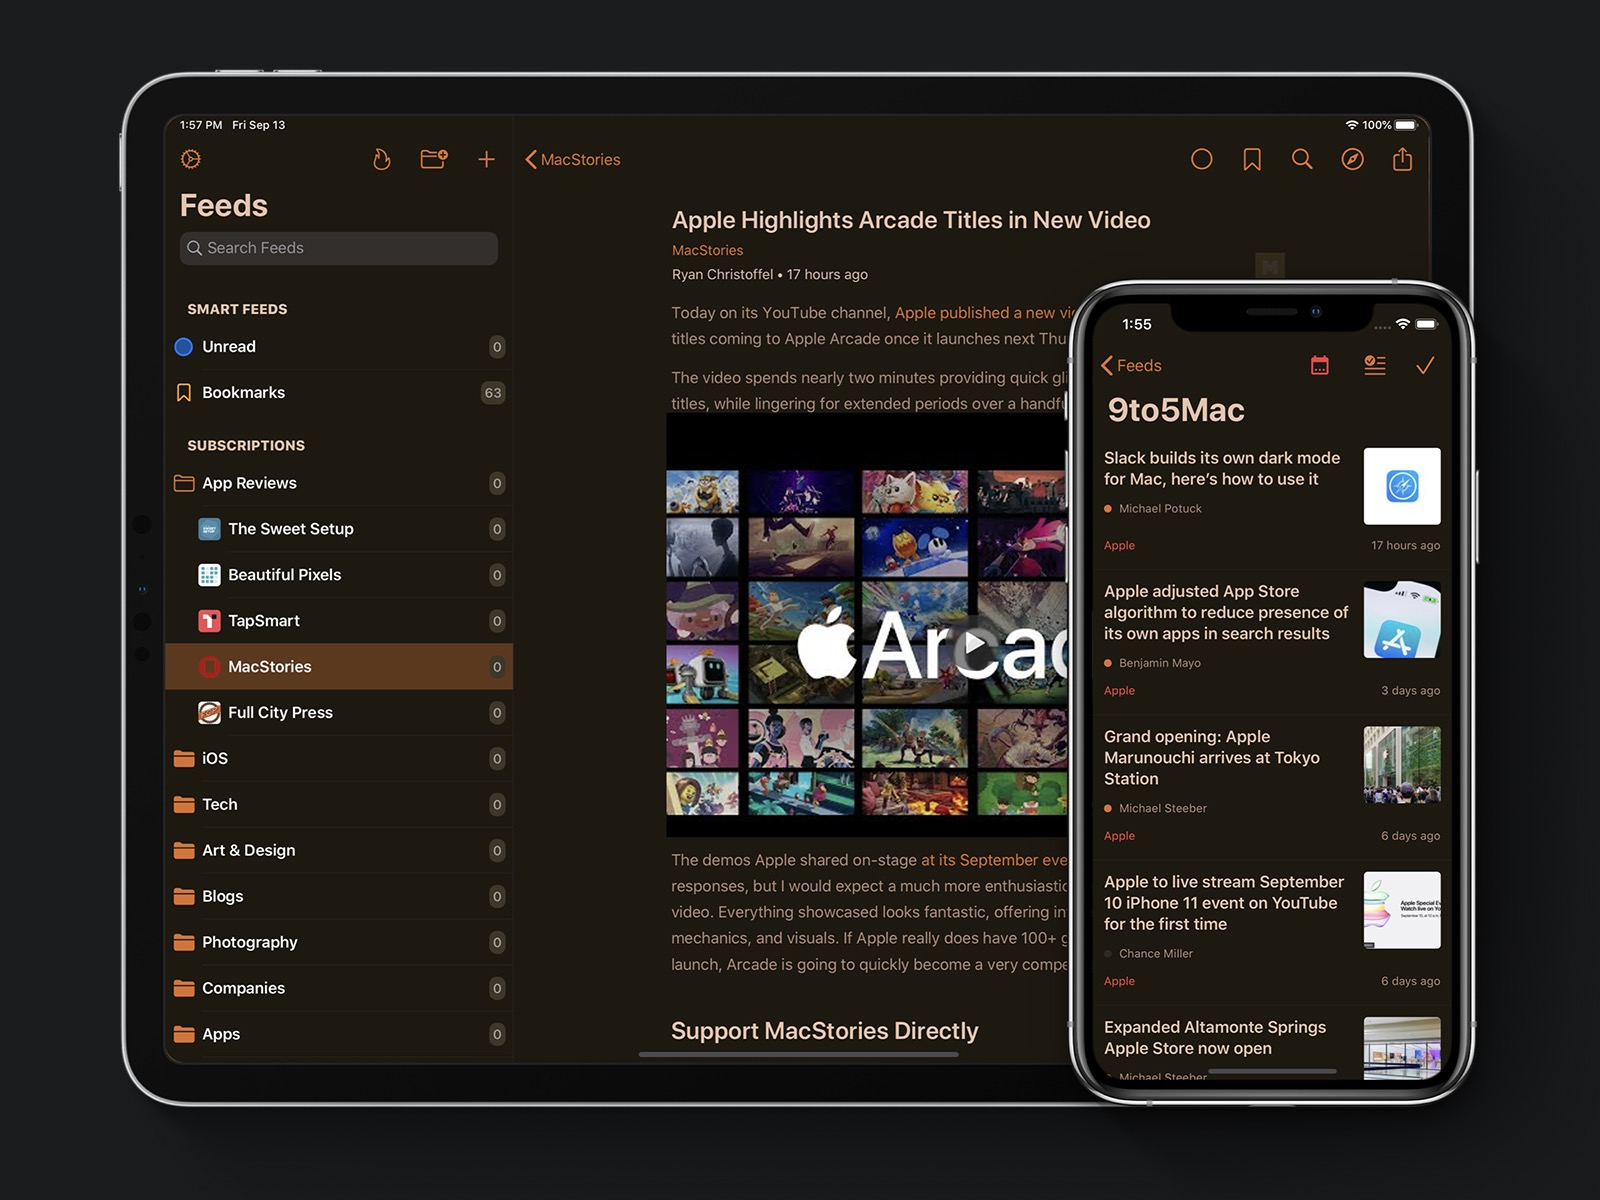 Dark Mode. iPad: Article Reader. iPhone: Feed's Articles List.